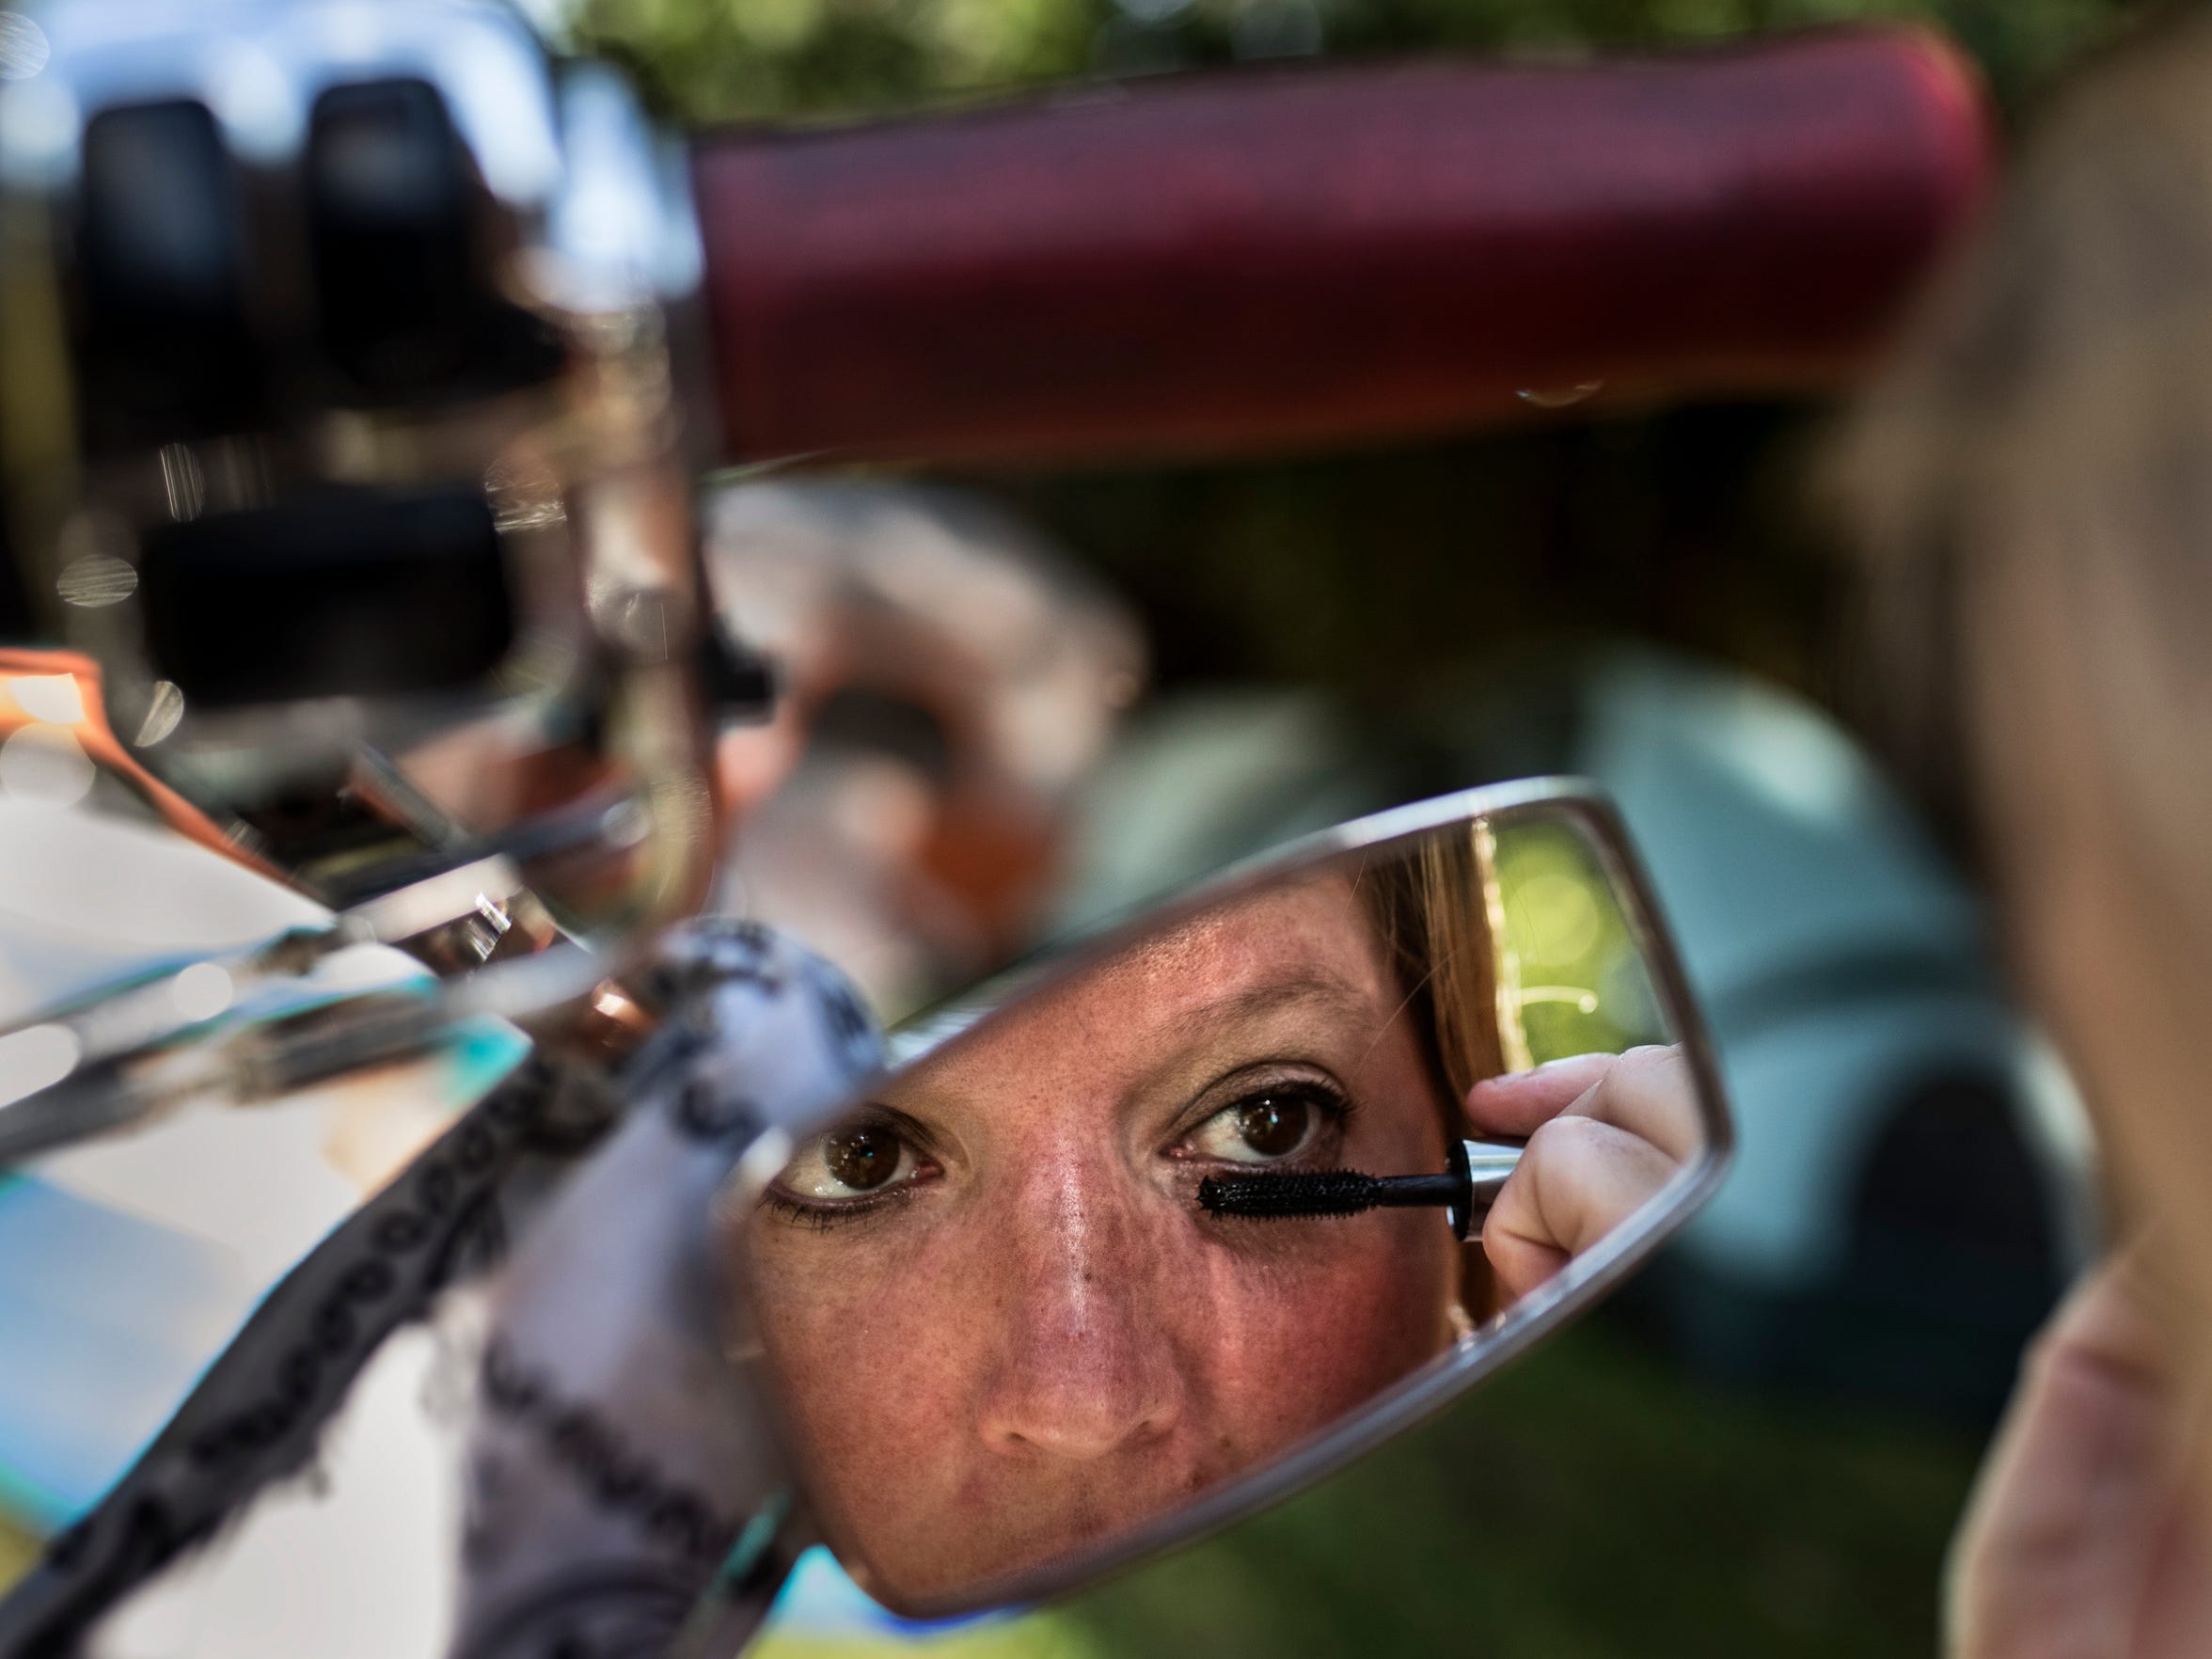 Felecia Blevins puts her makeup on in a motorcycle